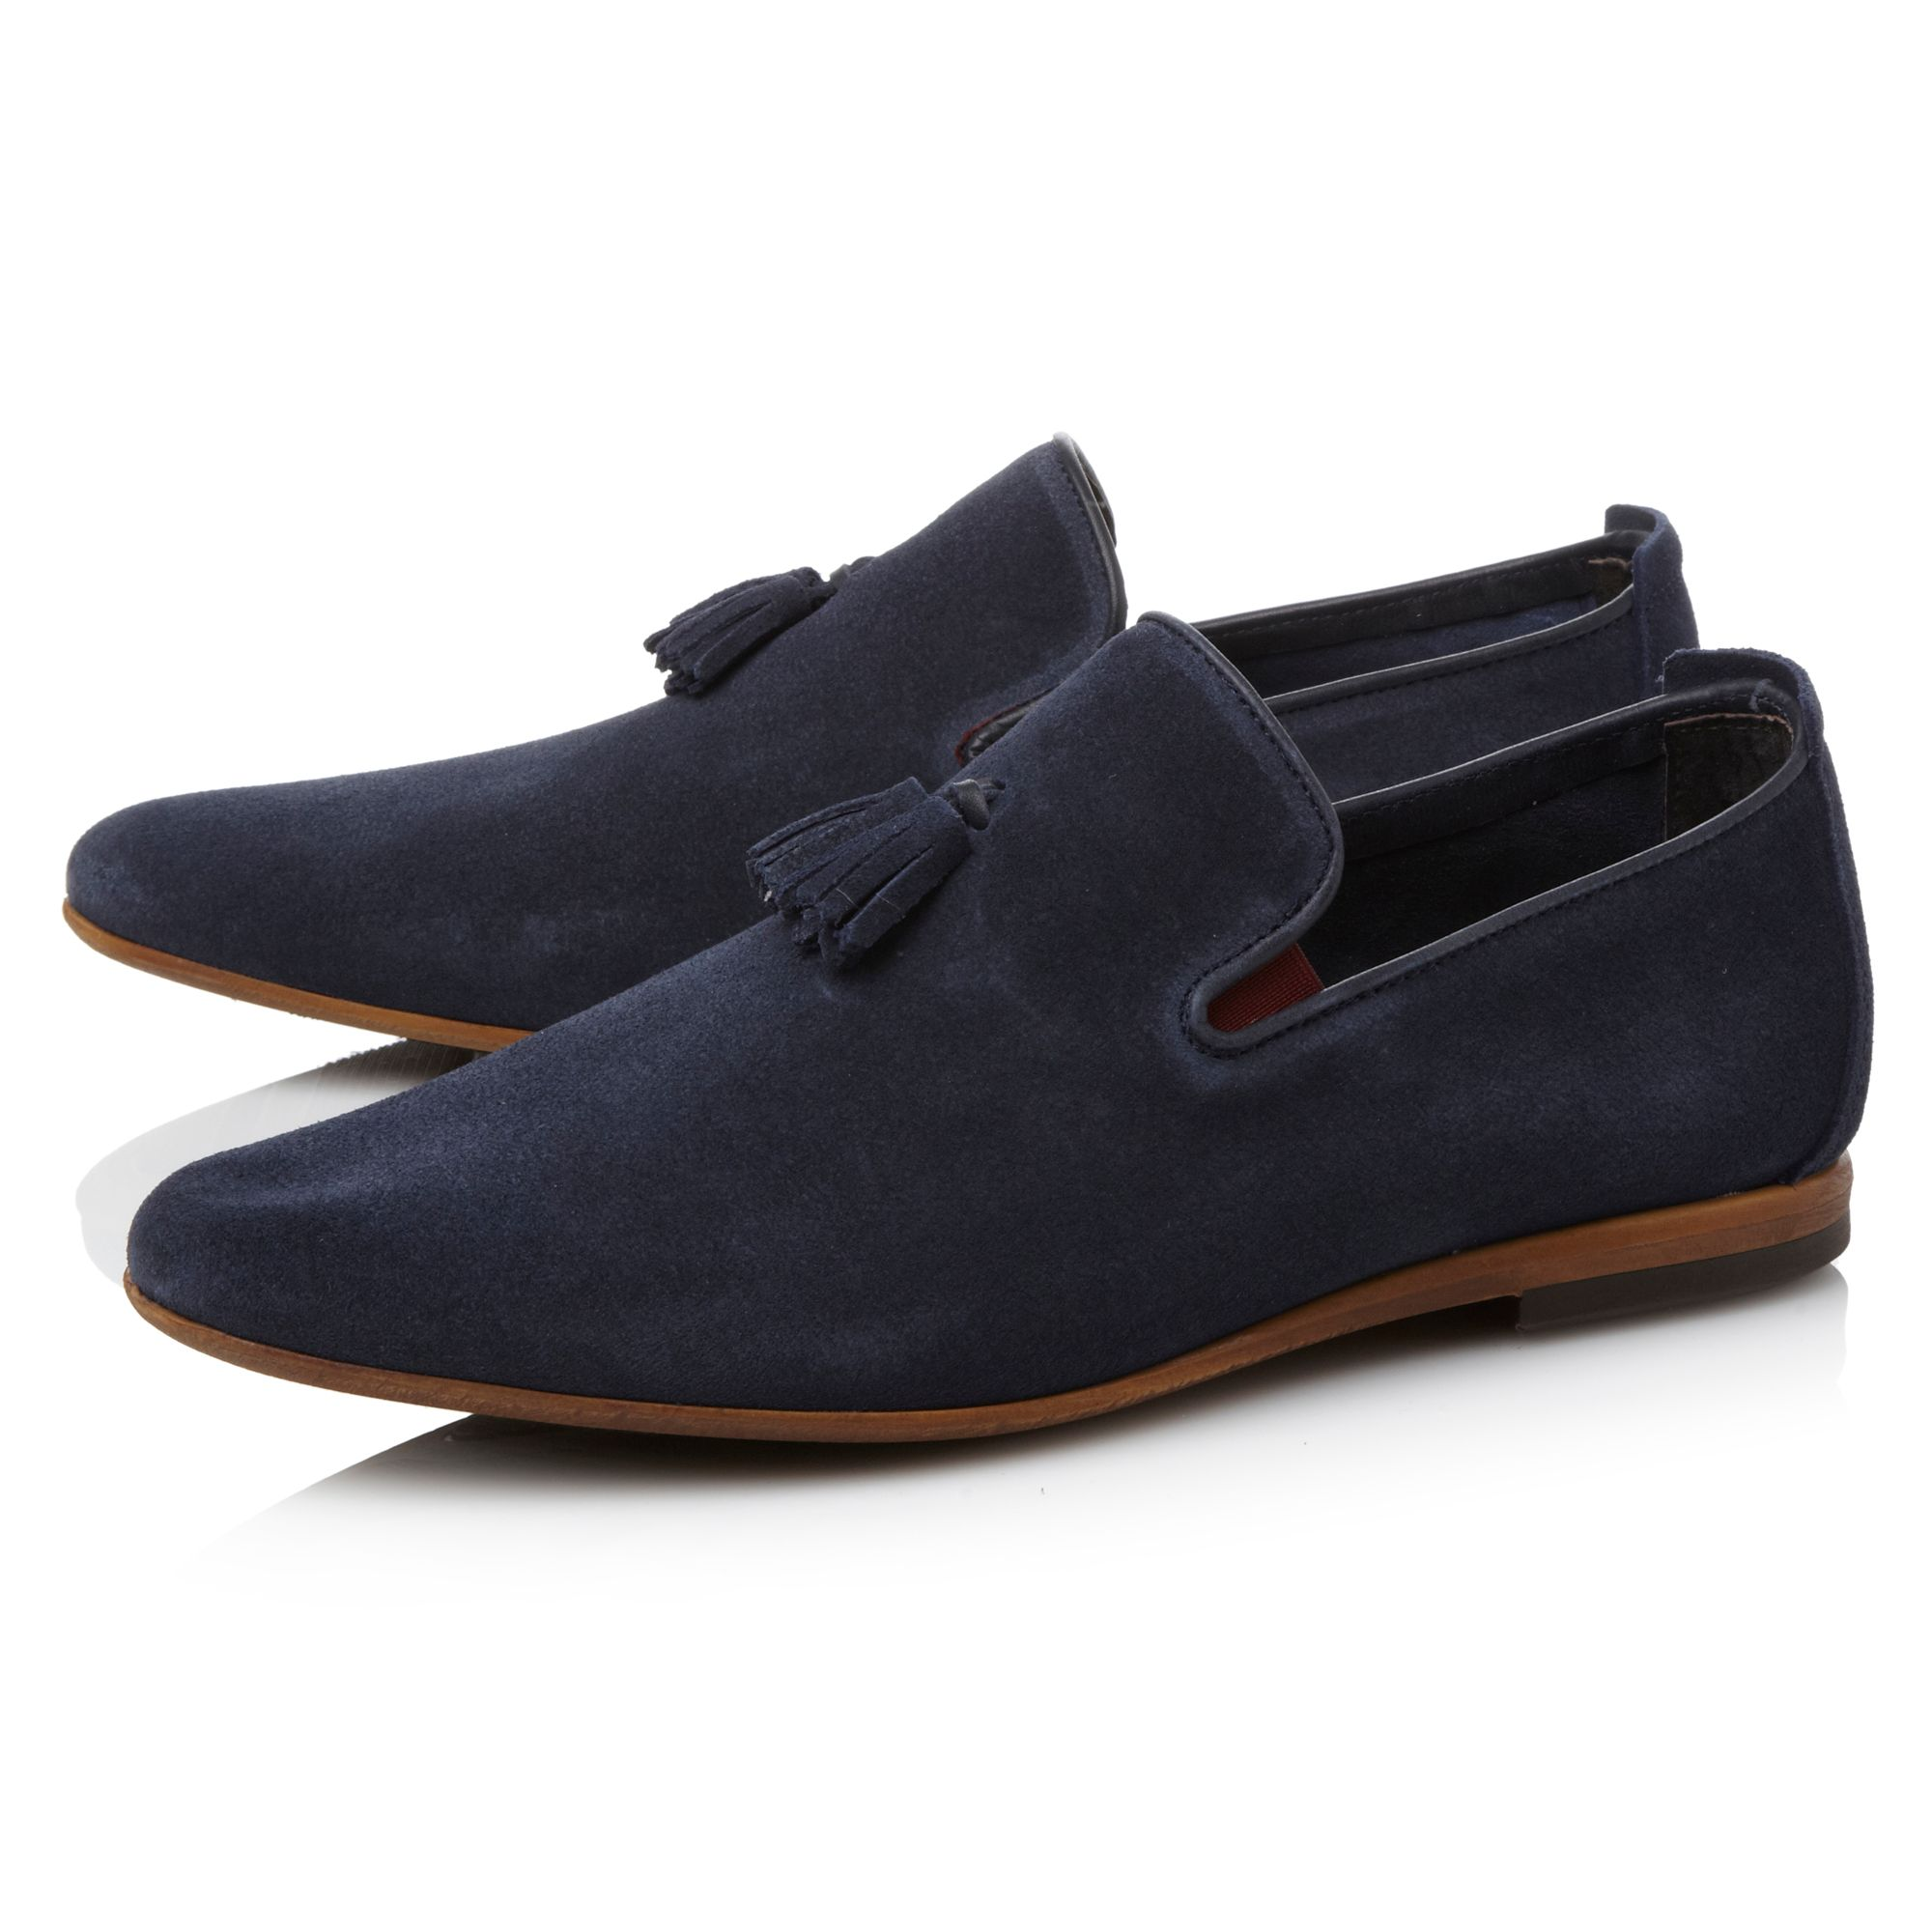 Beemer suede tassel slip on shoe